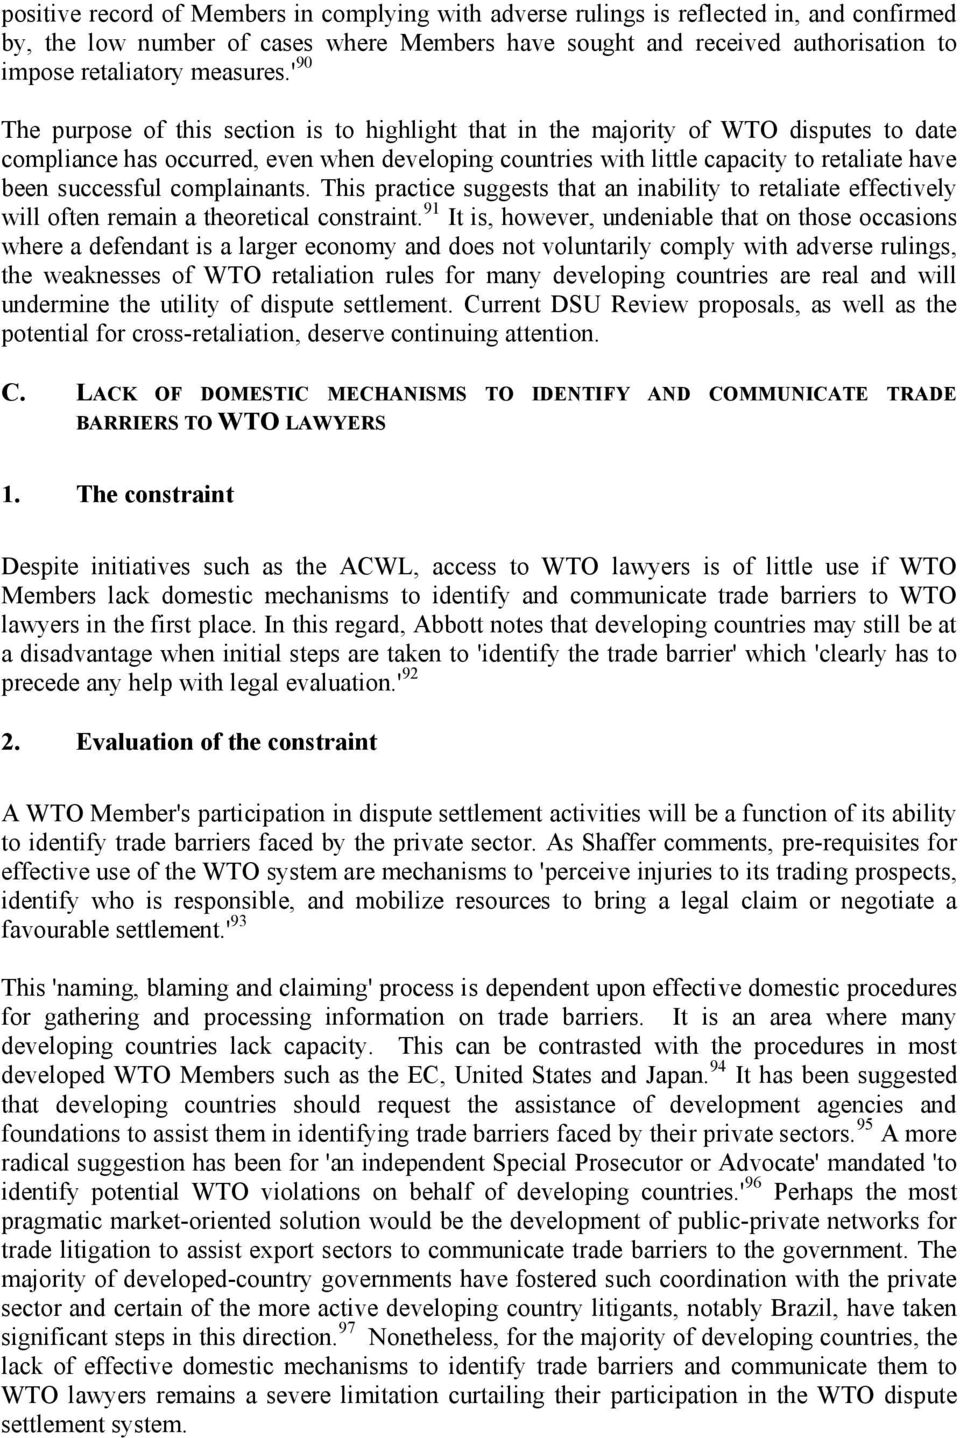 ' 90 The purpose of this section is to highlight that in the majority of WTO disputes to date compliance has occurred, even when developing countries with little capacity to retaliate have been